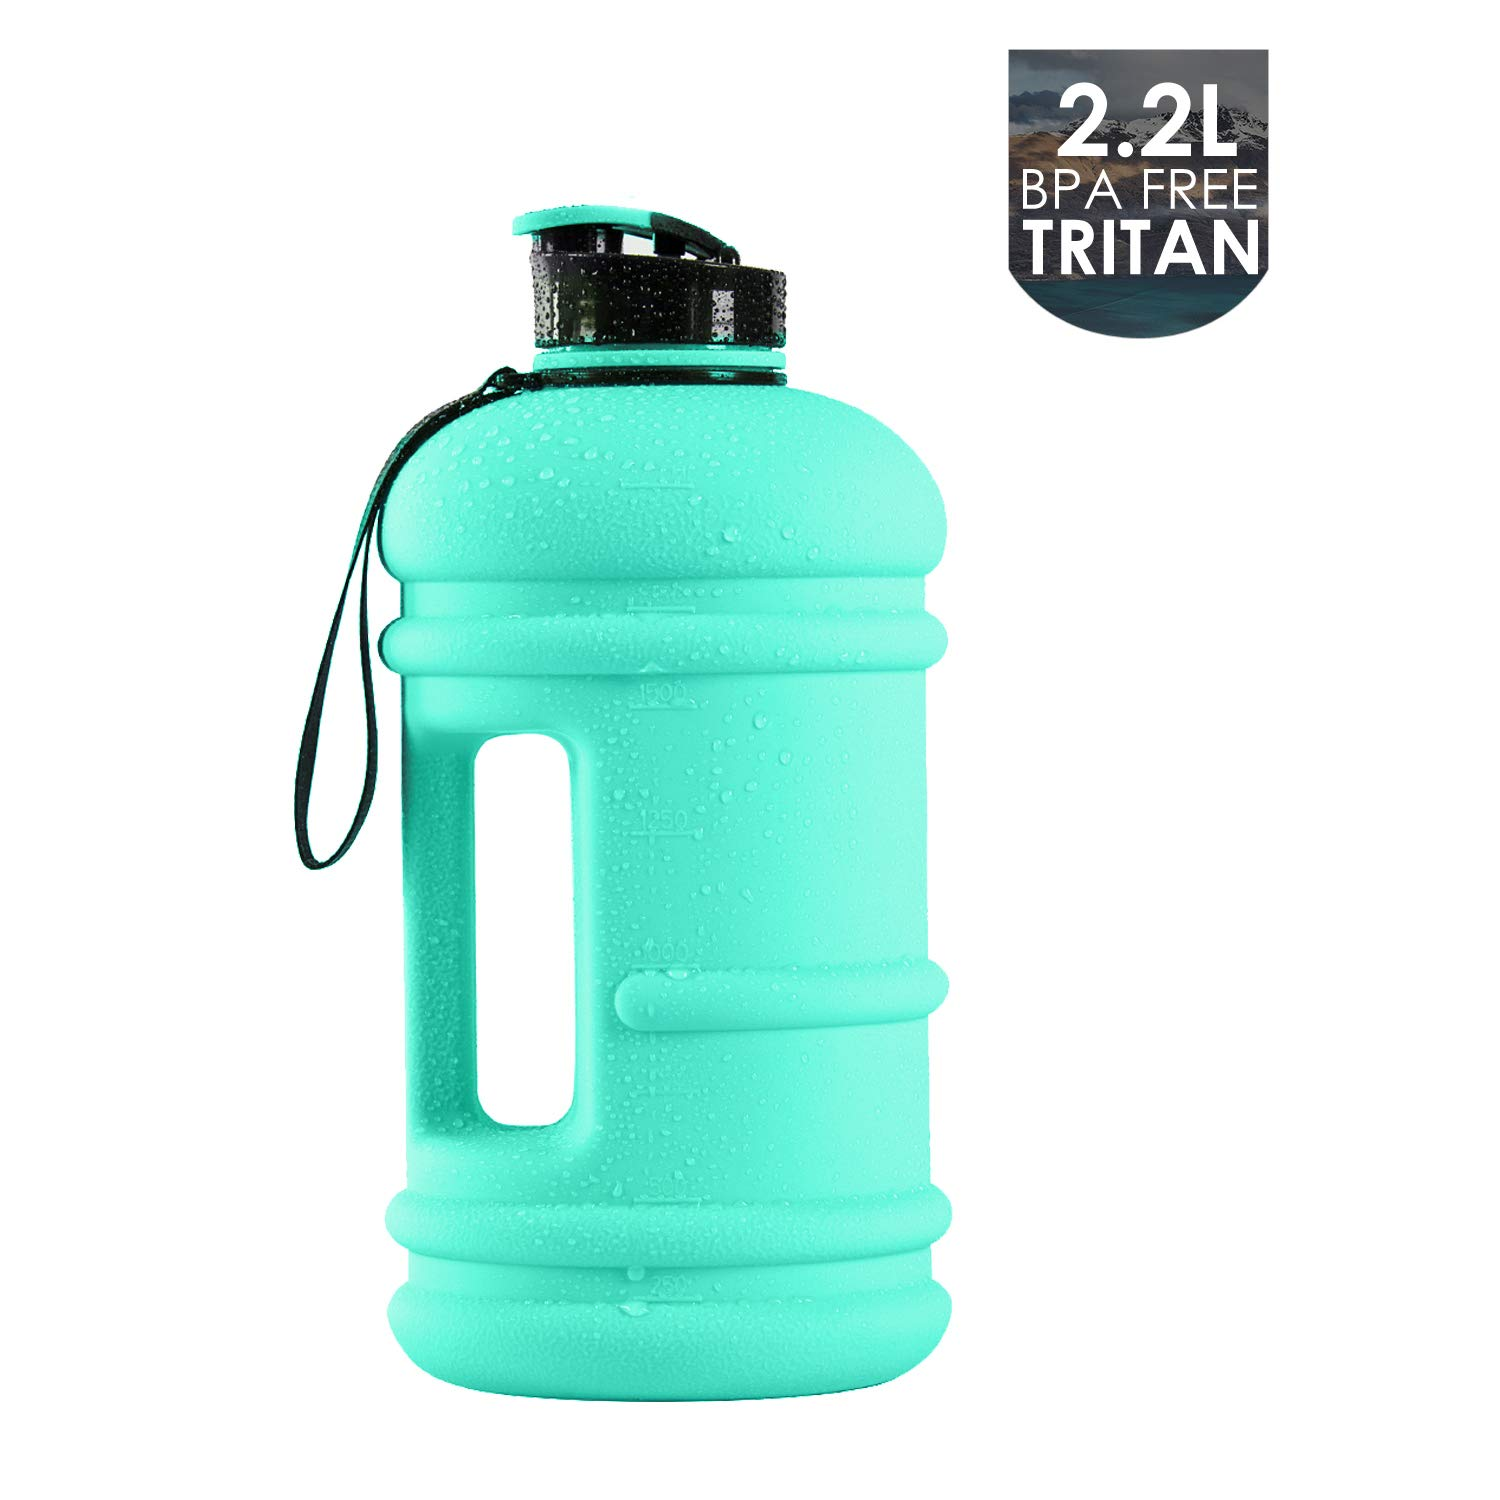 2.2l dishwashersafe frosted LIGHT GREEN 75oz Moonice Half Gallon Dishwasher Safe 2.2l Litre and 1.3l Big Capacity BPA Free Leakproof Plastic Gym Sports Water Bottle Large Drinking Water Jug Hydrate Container